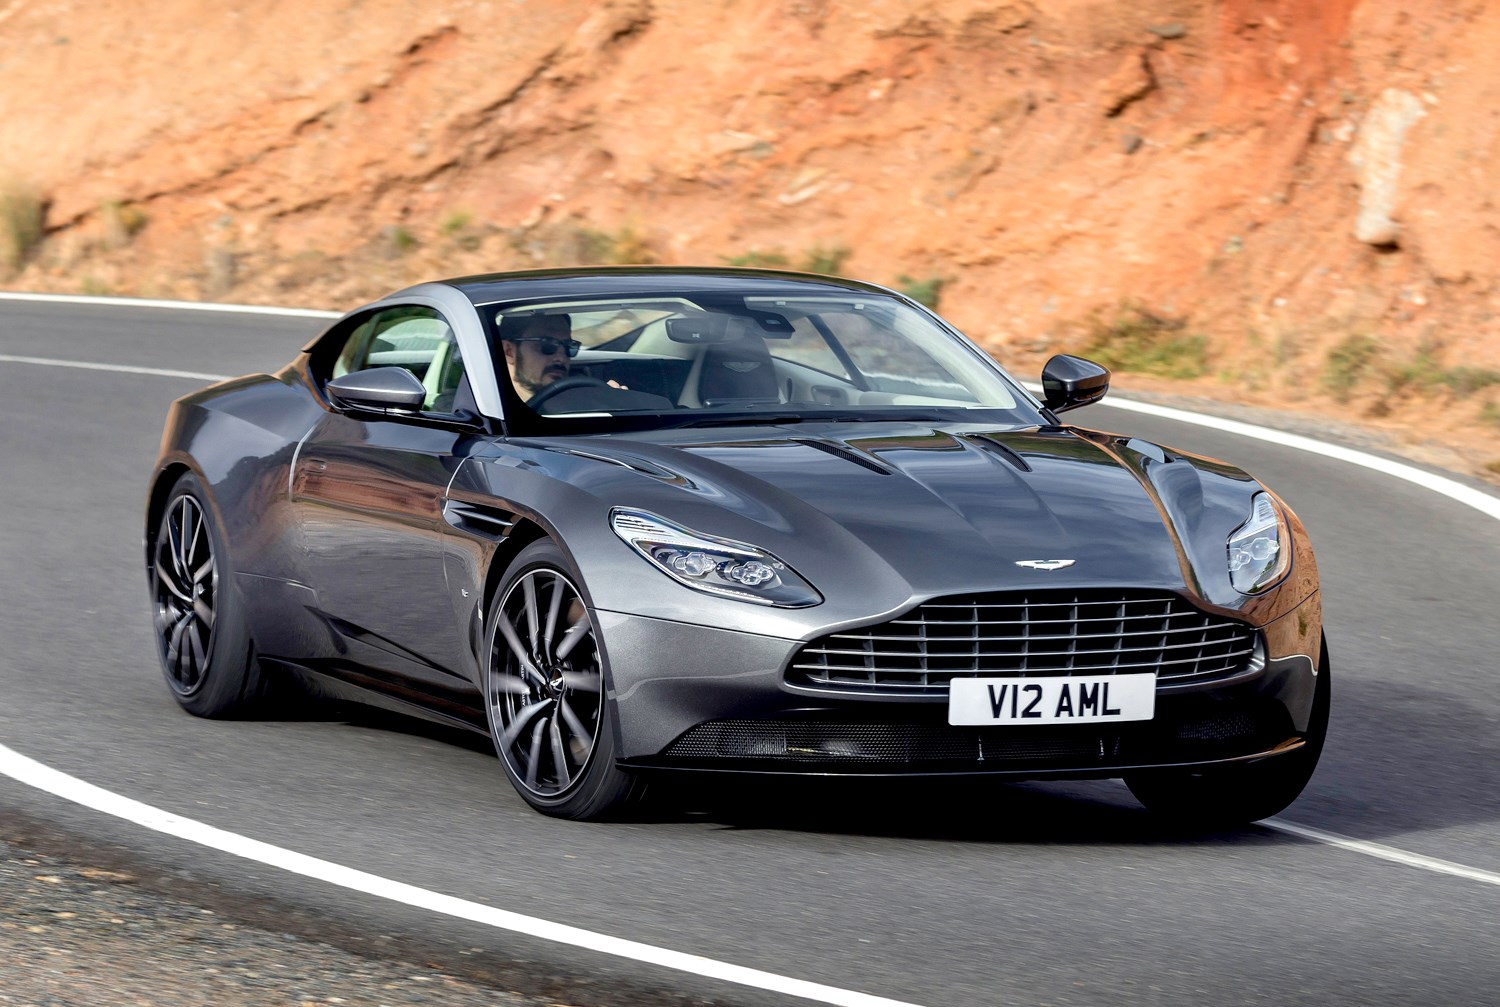 aston martin db11 coupe review (2016 - ) | parkers